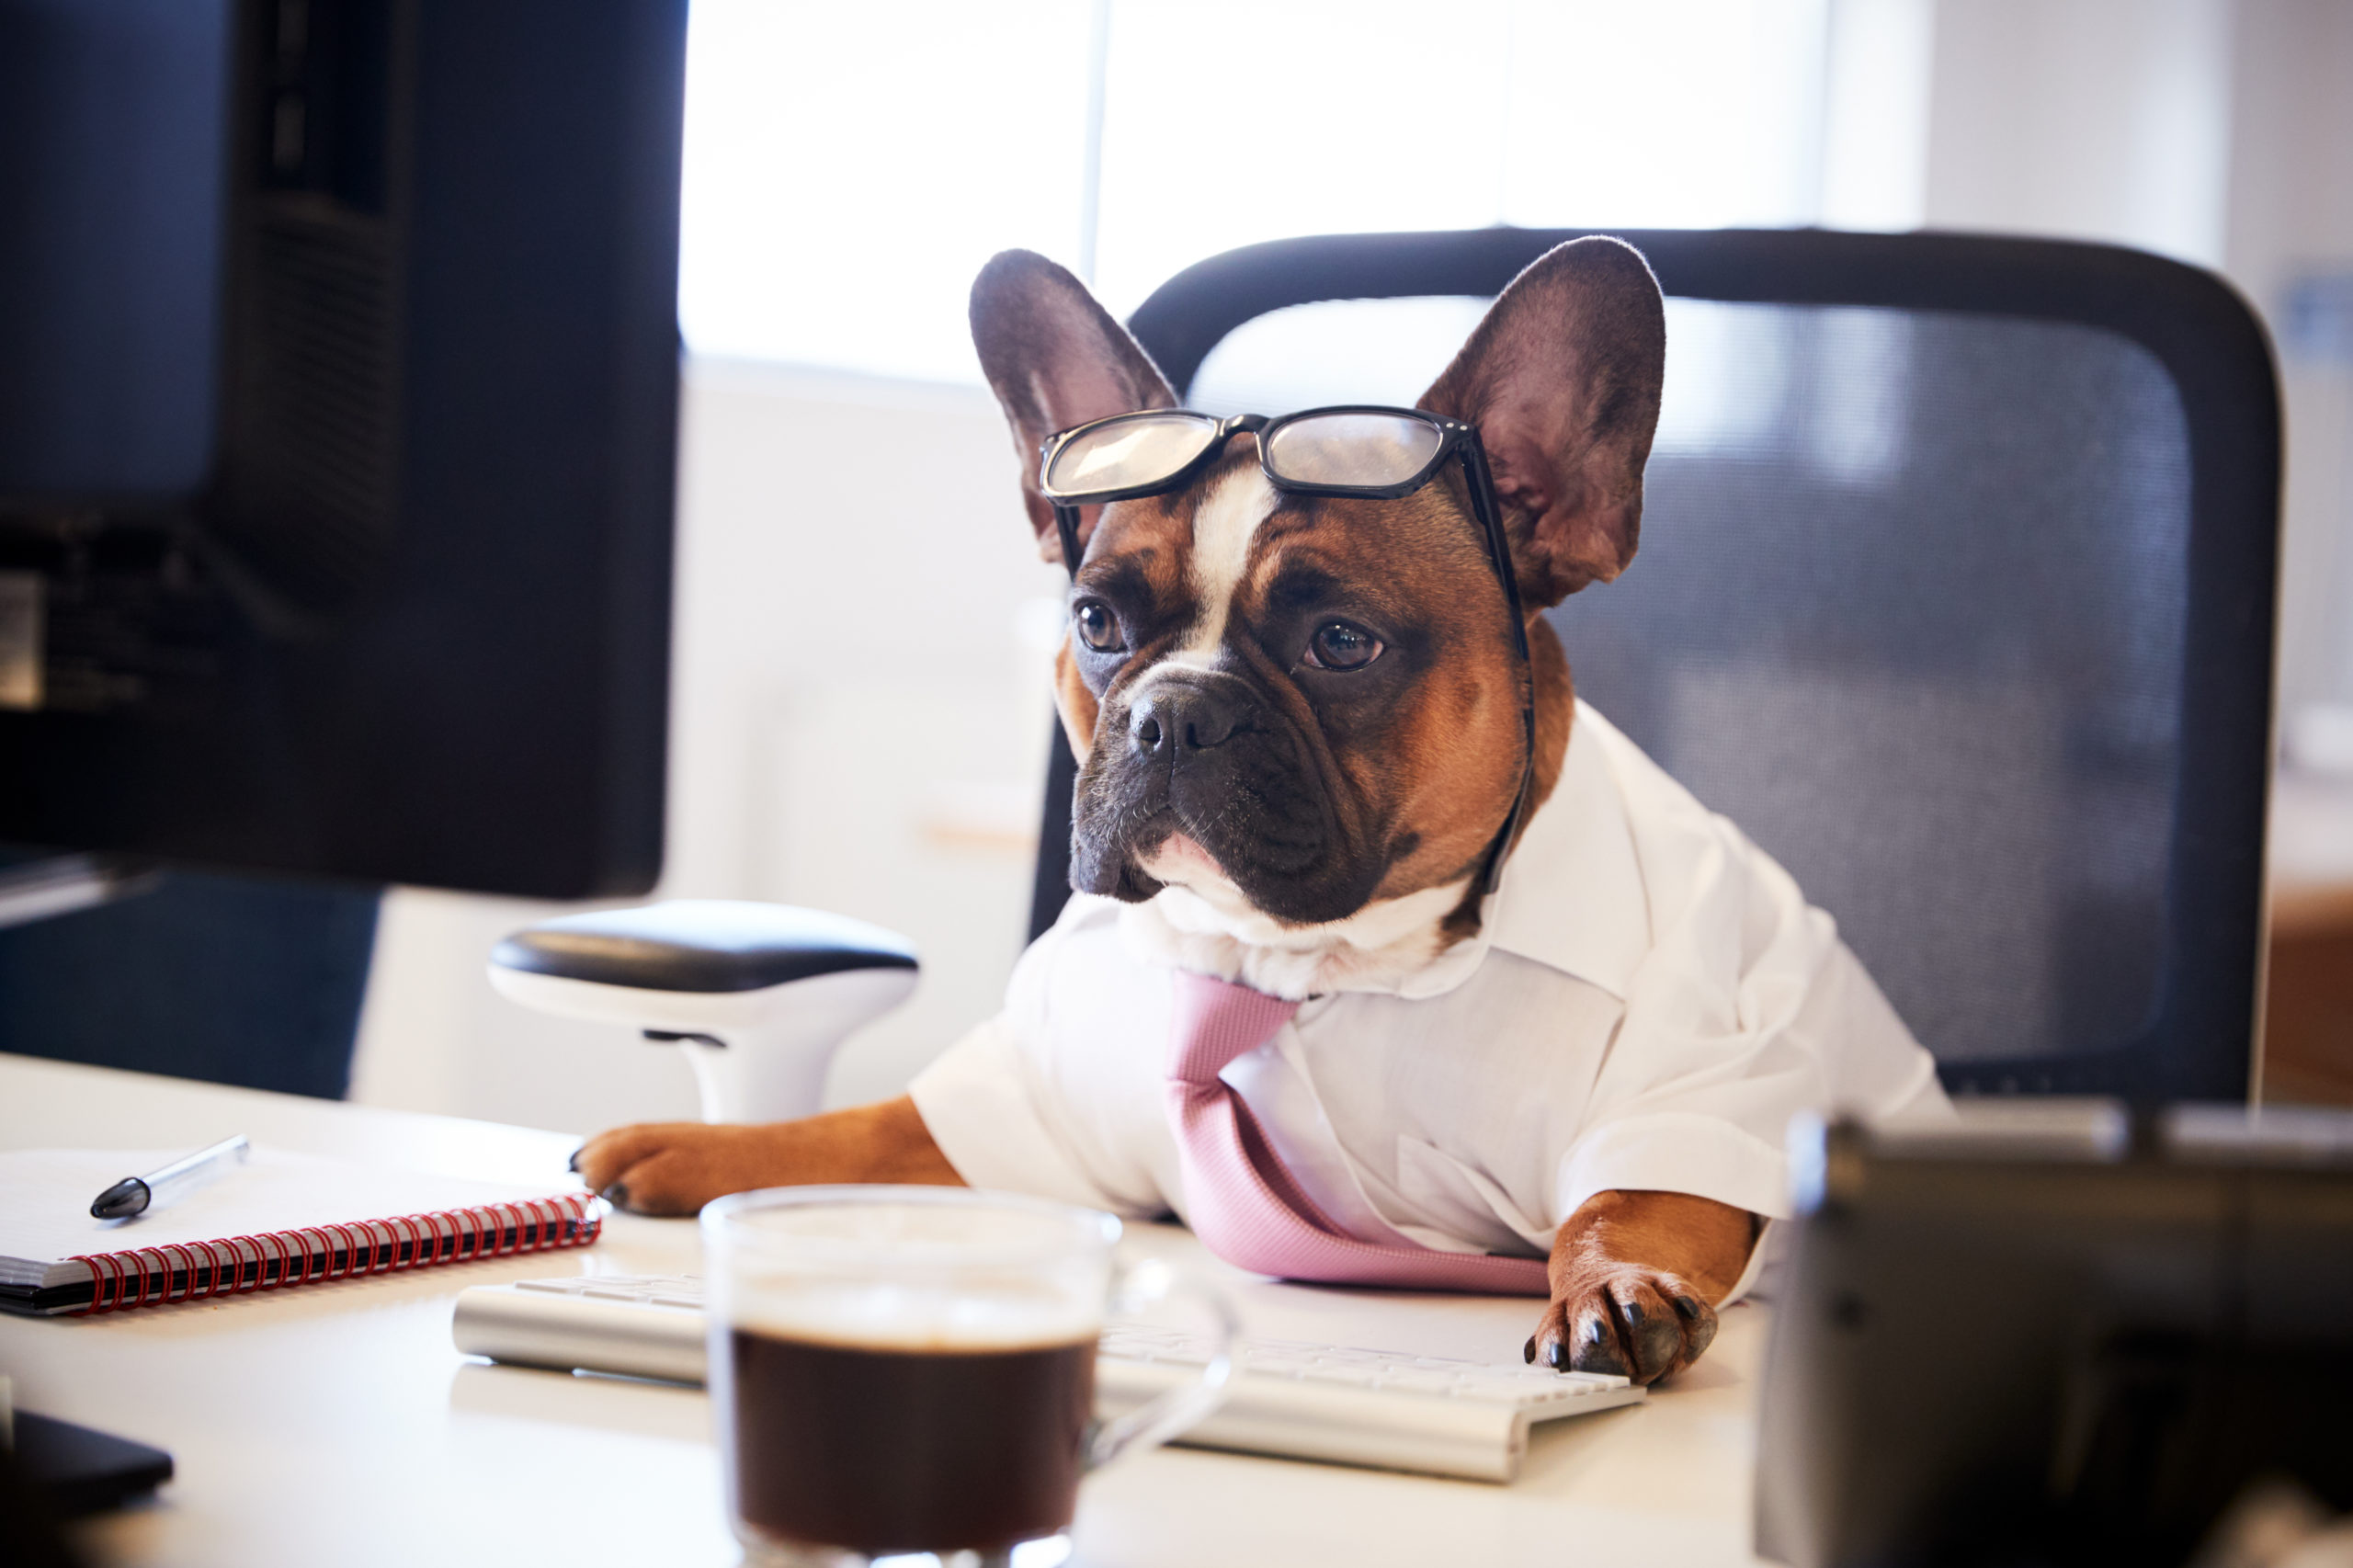 French,Bulldog,Dressed,As,Businessman,Works,At,Desk,On,Computer